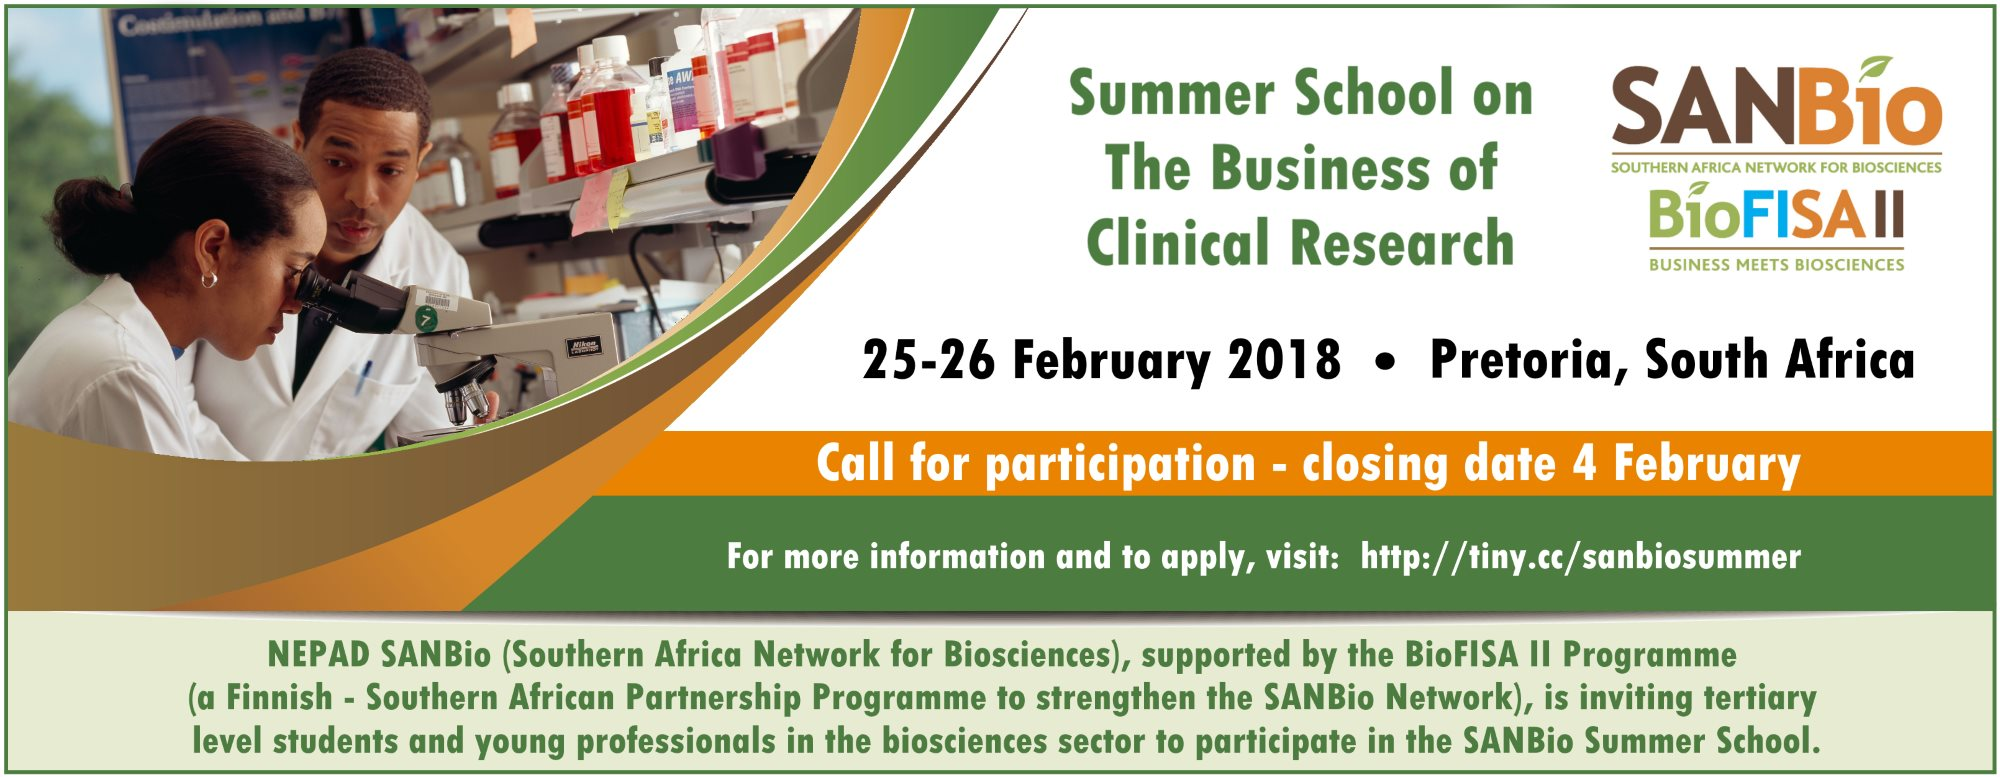 SANBio Summer School: The Business of Clinical Research -Pretoria South Africa ( Partially Funded)